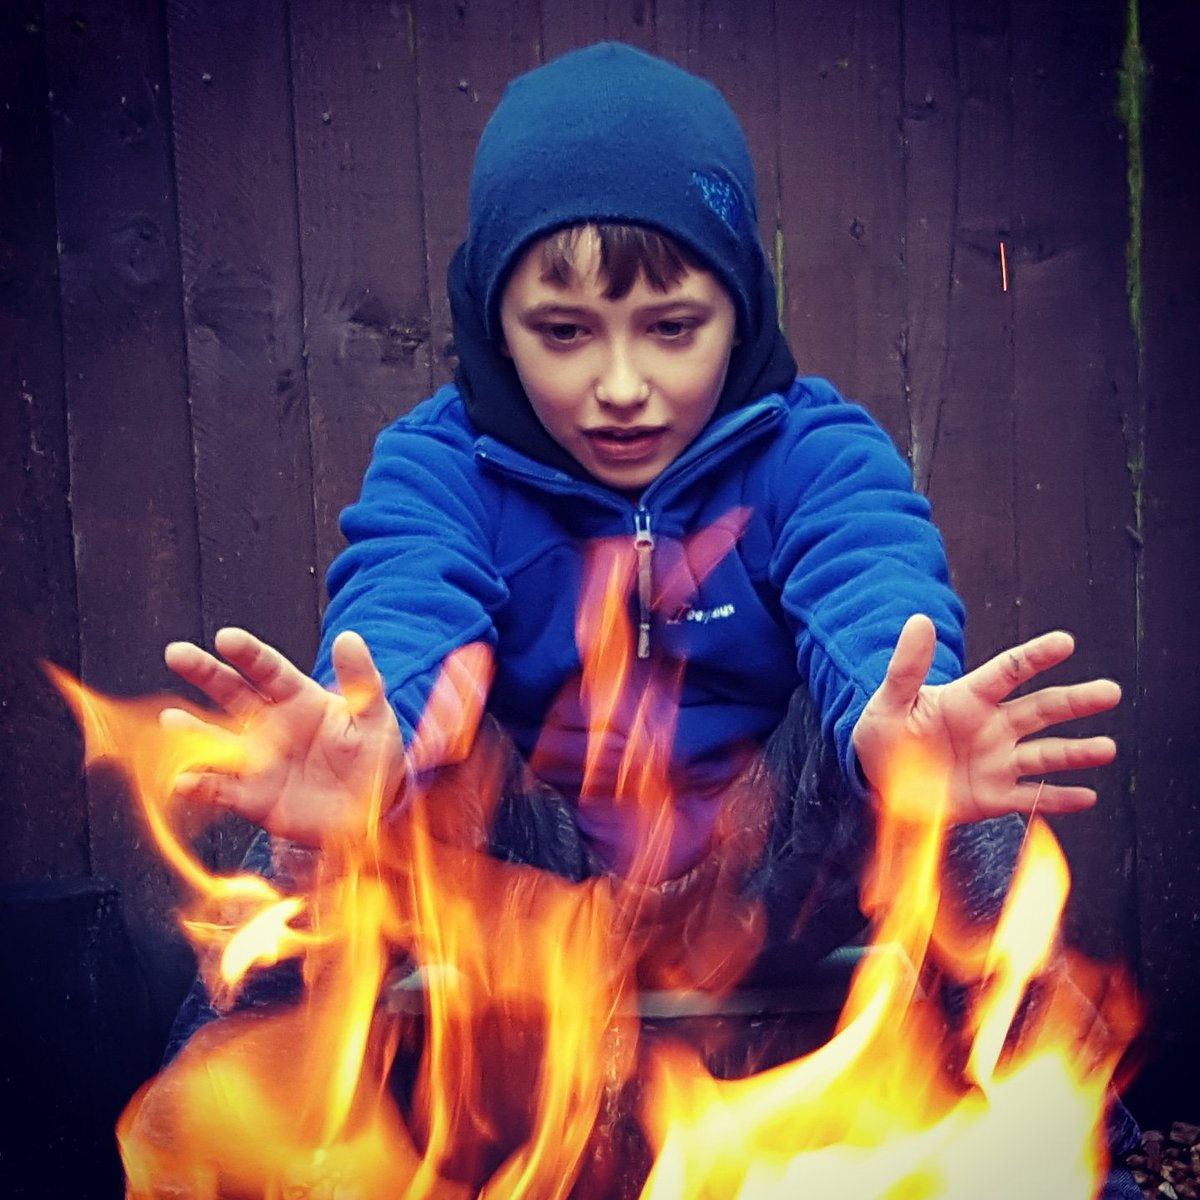 Fire is awesome, fascinating, & powerful, but also dangerous, damaging & deadly! Respect for it should be taught early and learned by everyone. #Bushcraft #survival #survivalskills #outdoorskills #skillsforlife #fire #campfire #survivalinstinct #primal #respect #riskmanagement